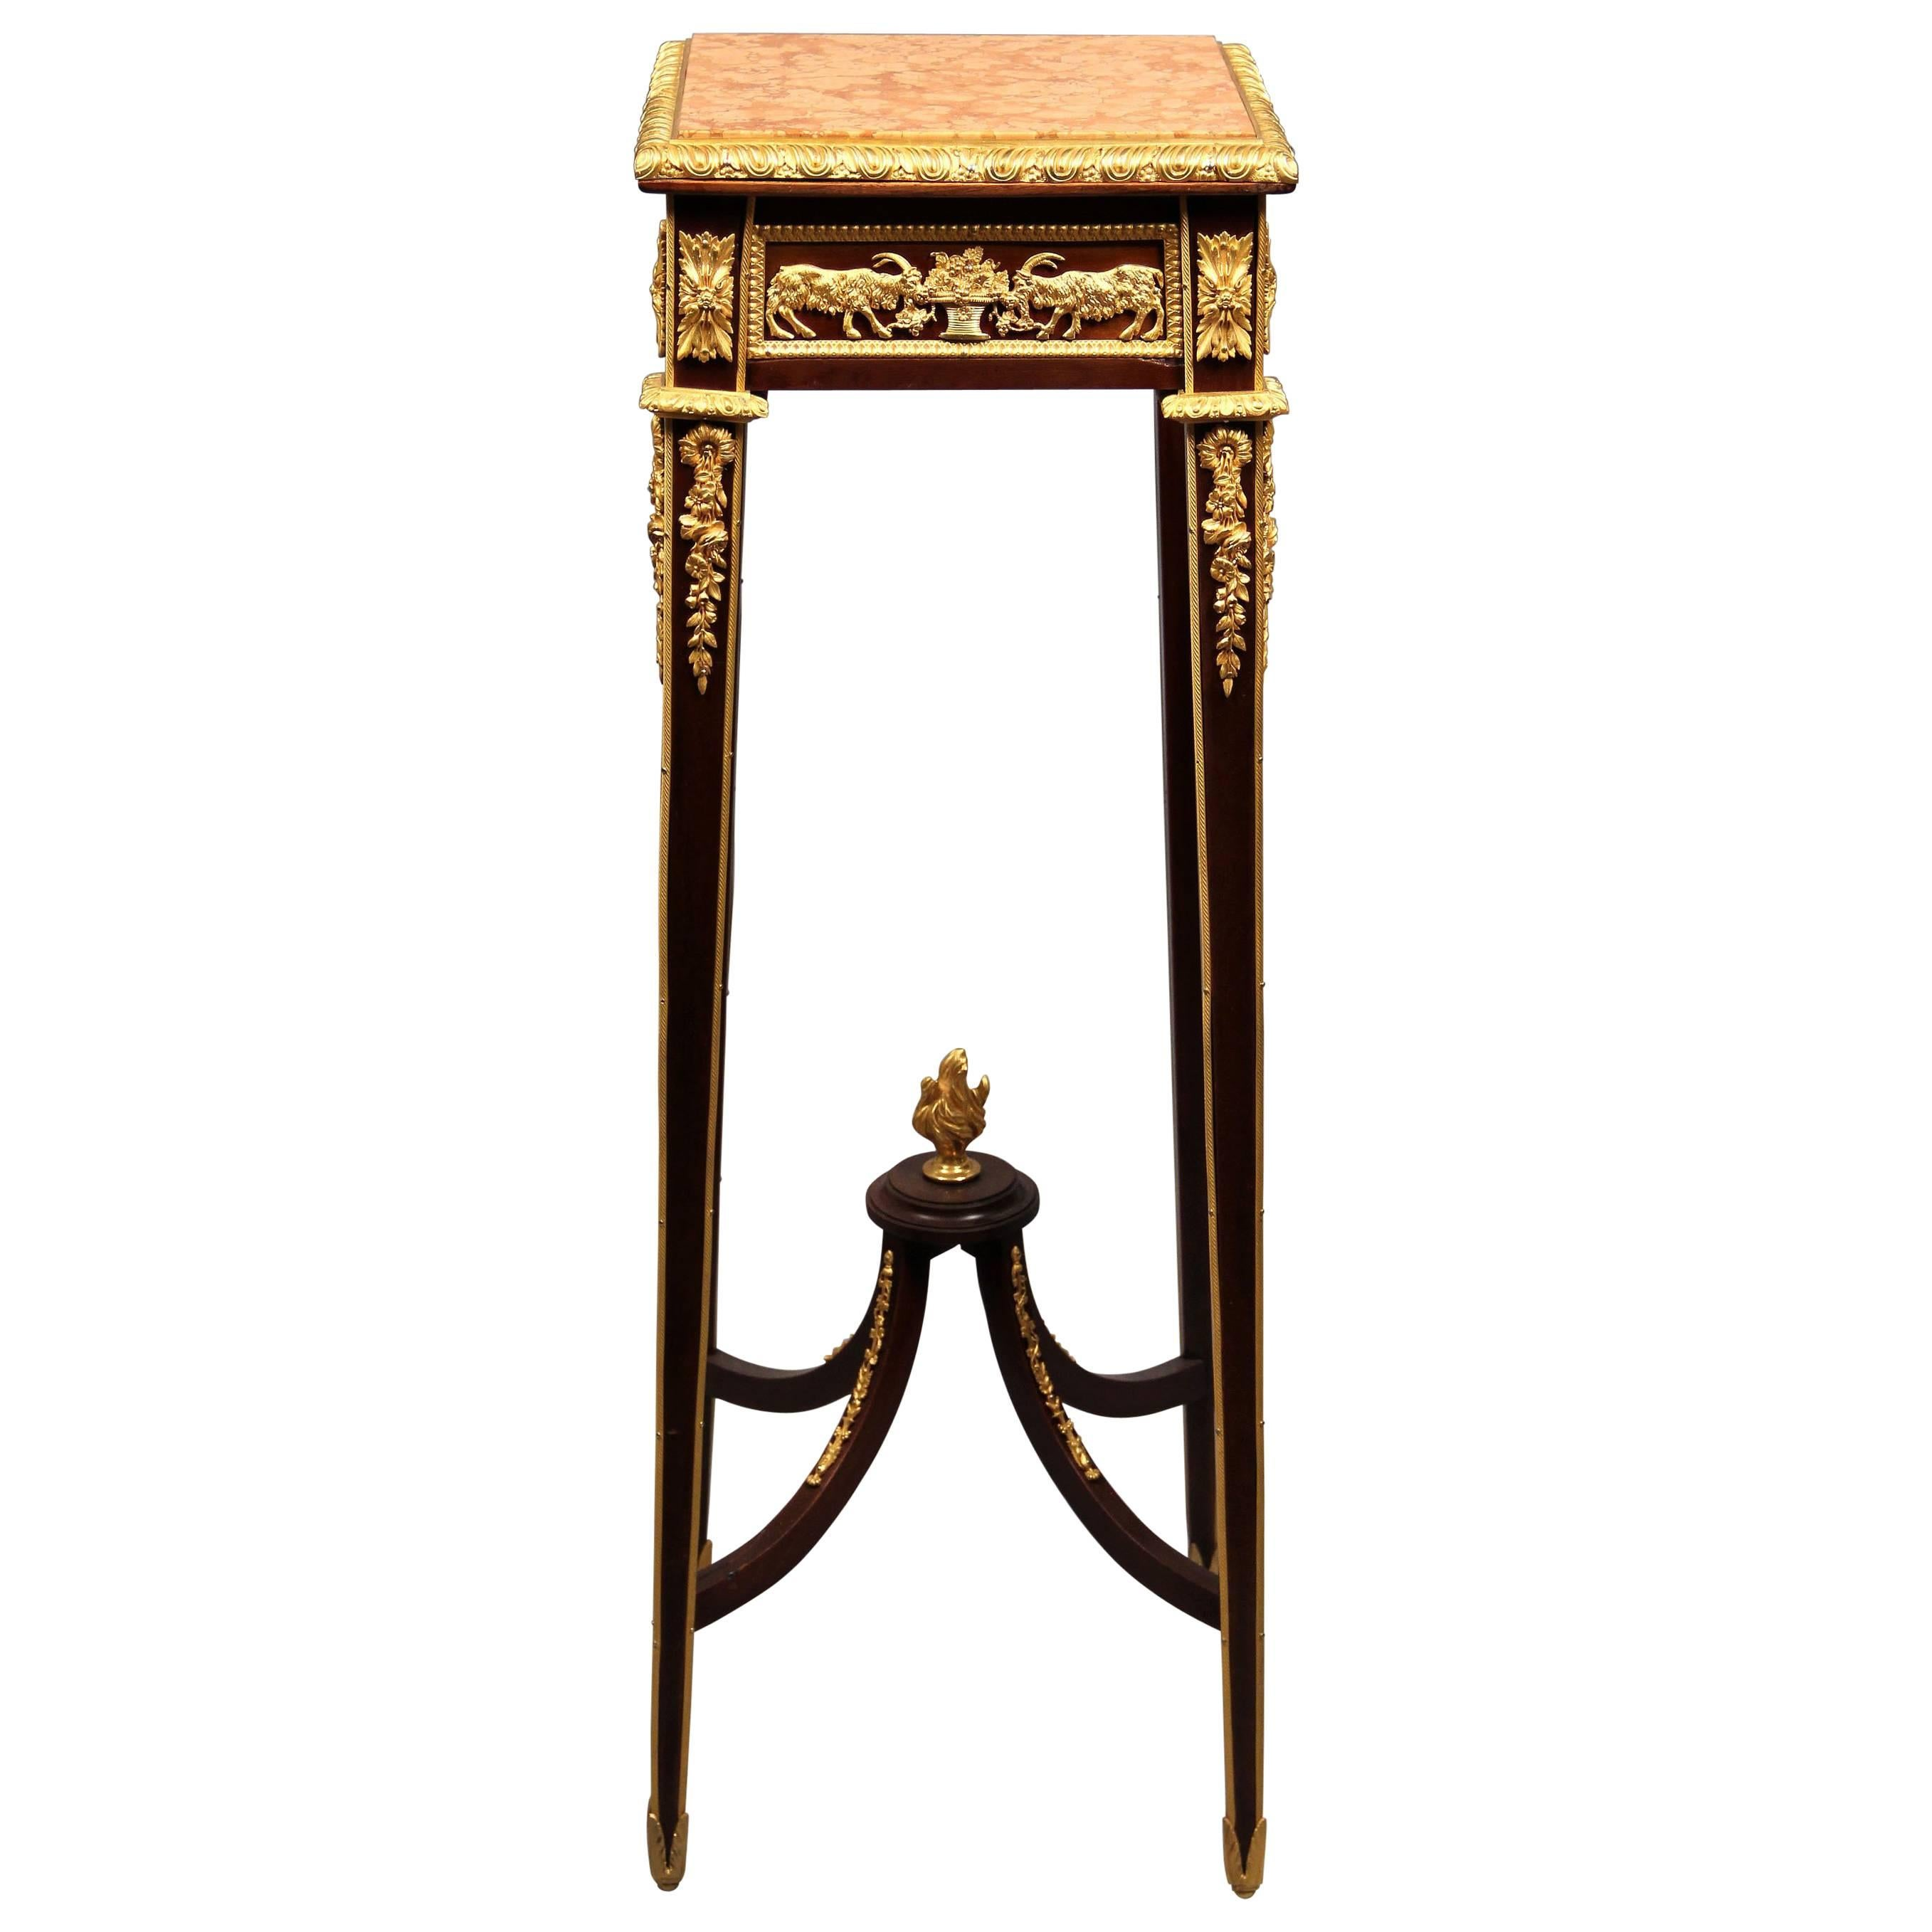 Very Fine Late 19th Century Gilt Bronze-Mounted Marble-Top Pedestal